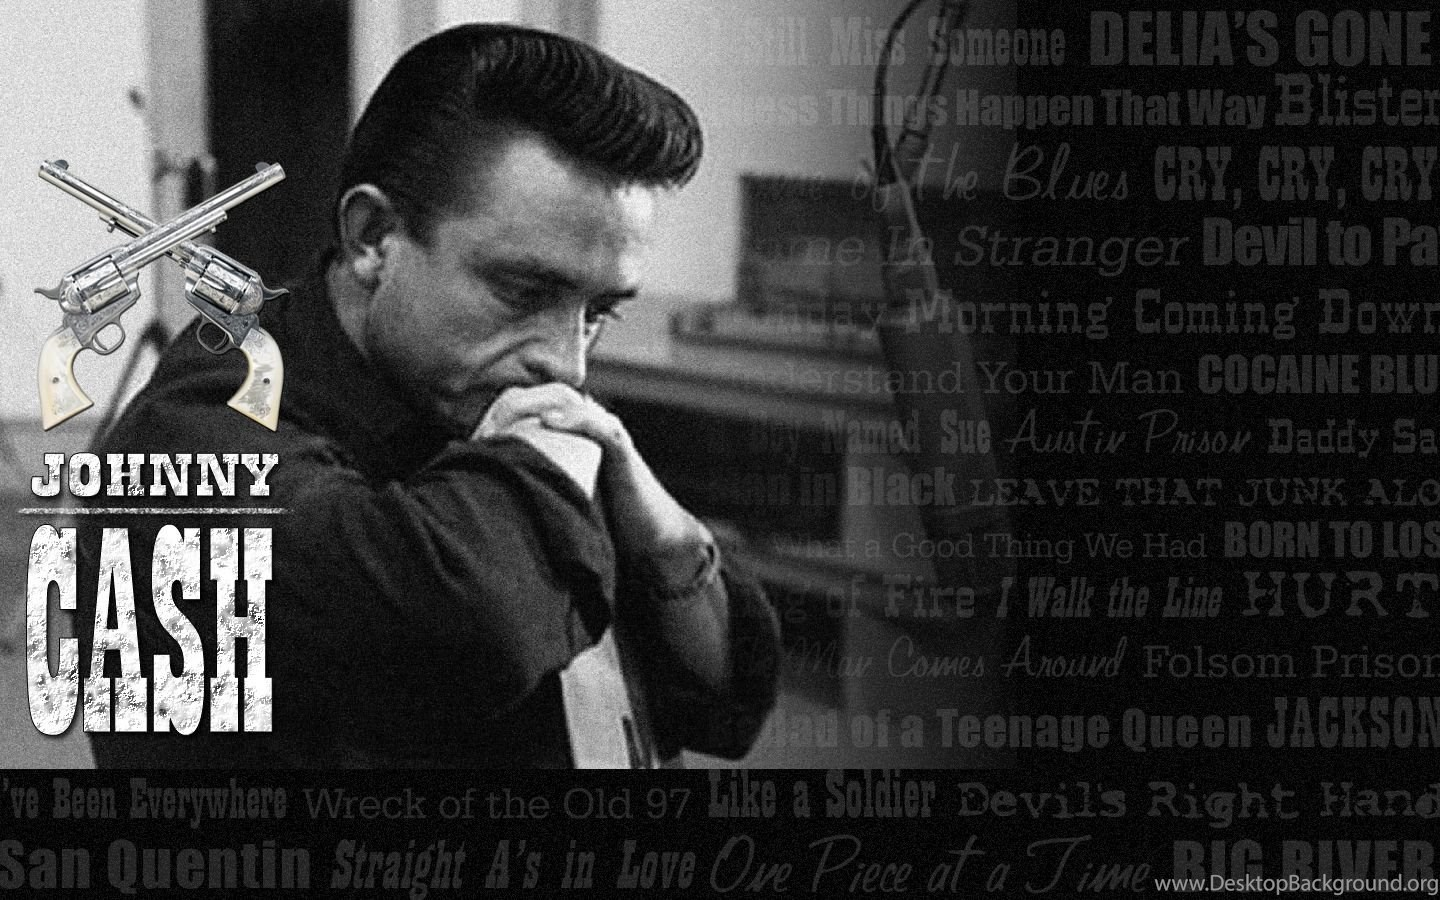 HD Johnny Cash Wallpaper - spliffmobile.com